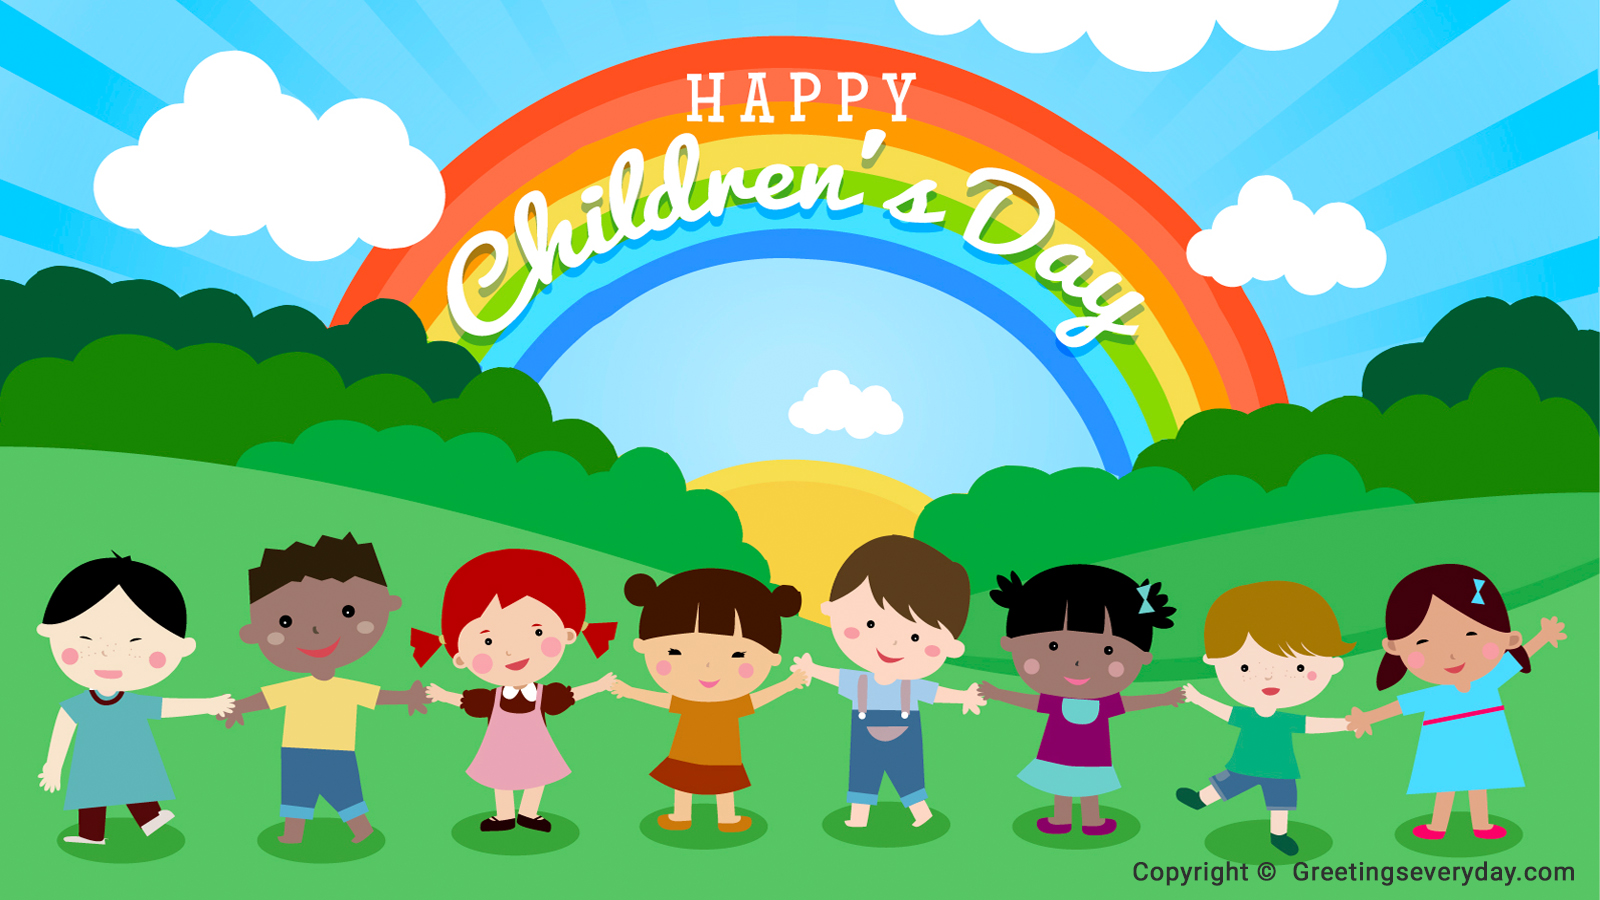 Best}* Happy Children's Day 2016 HD Wallpaper, Image, Picture & Photo